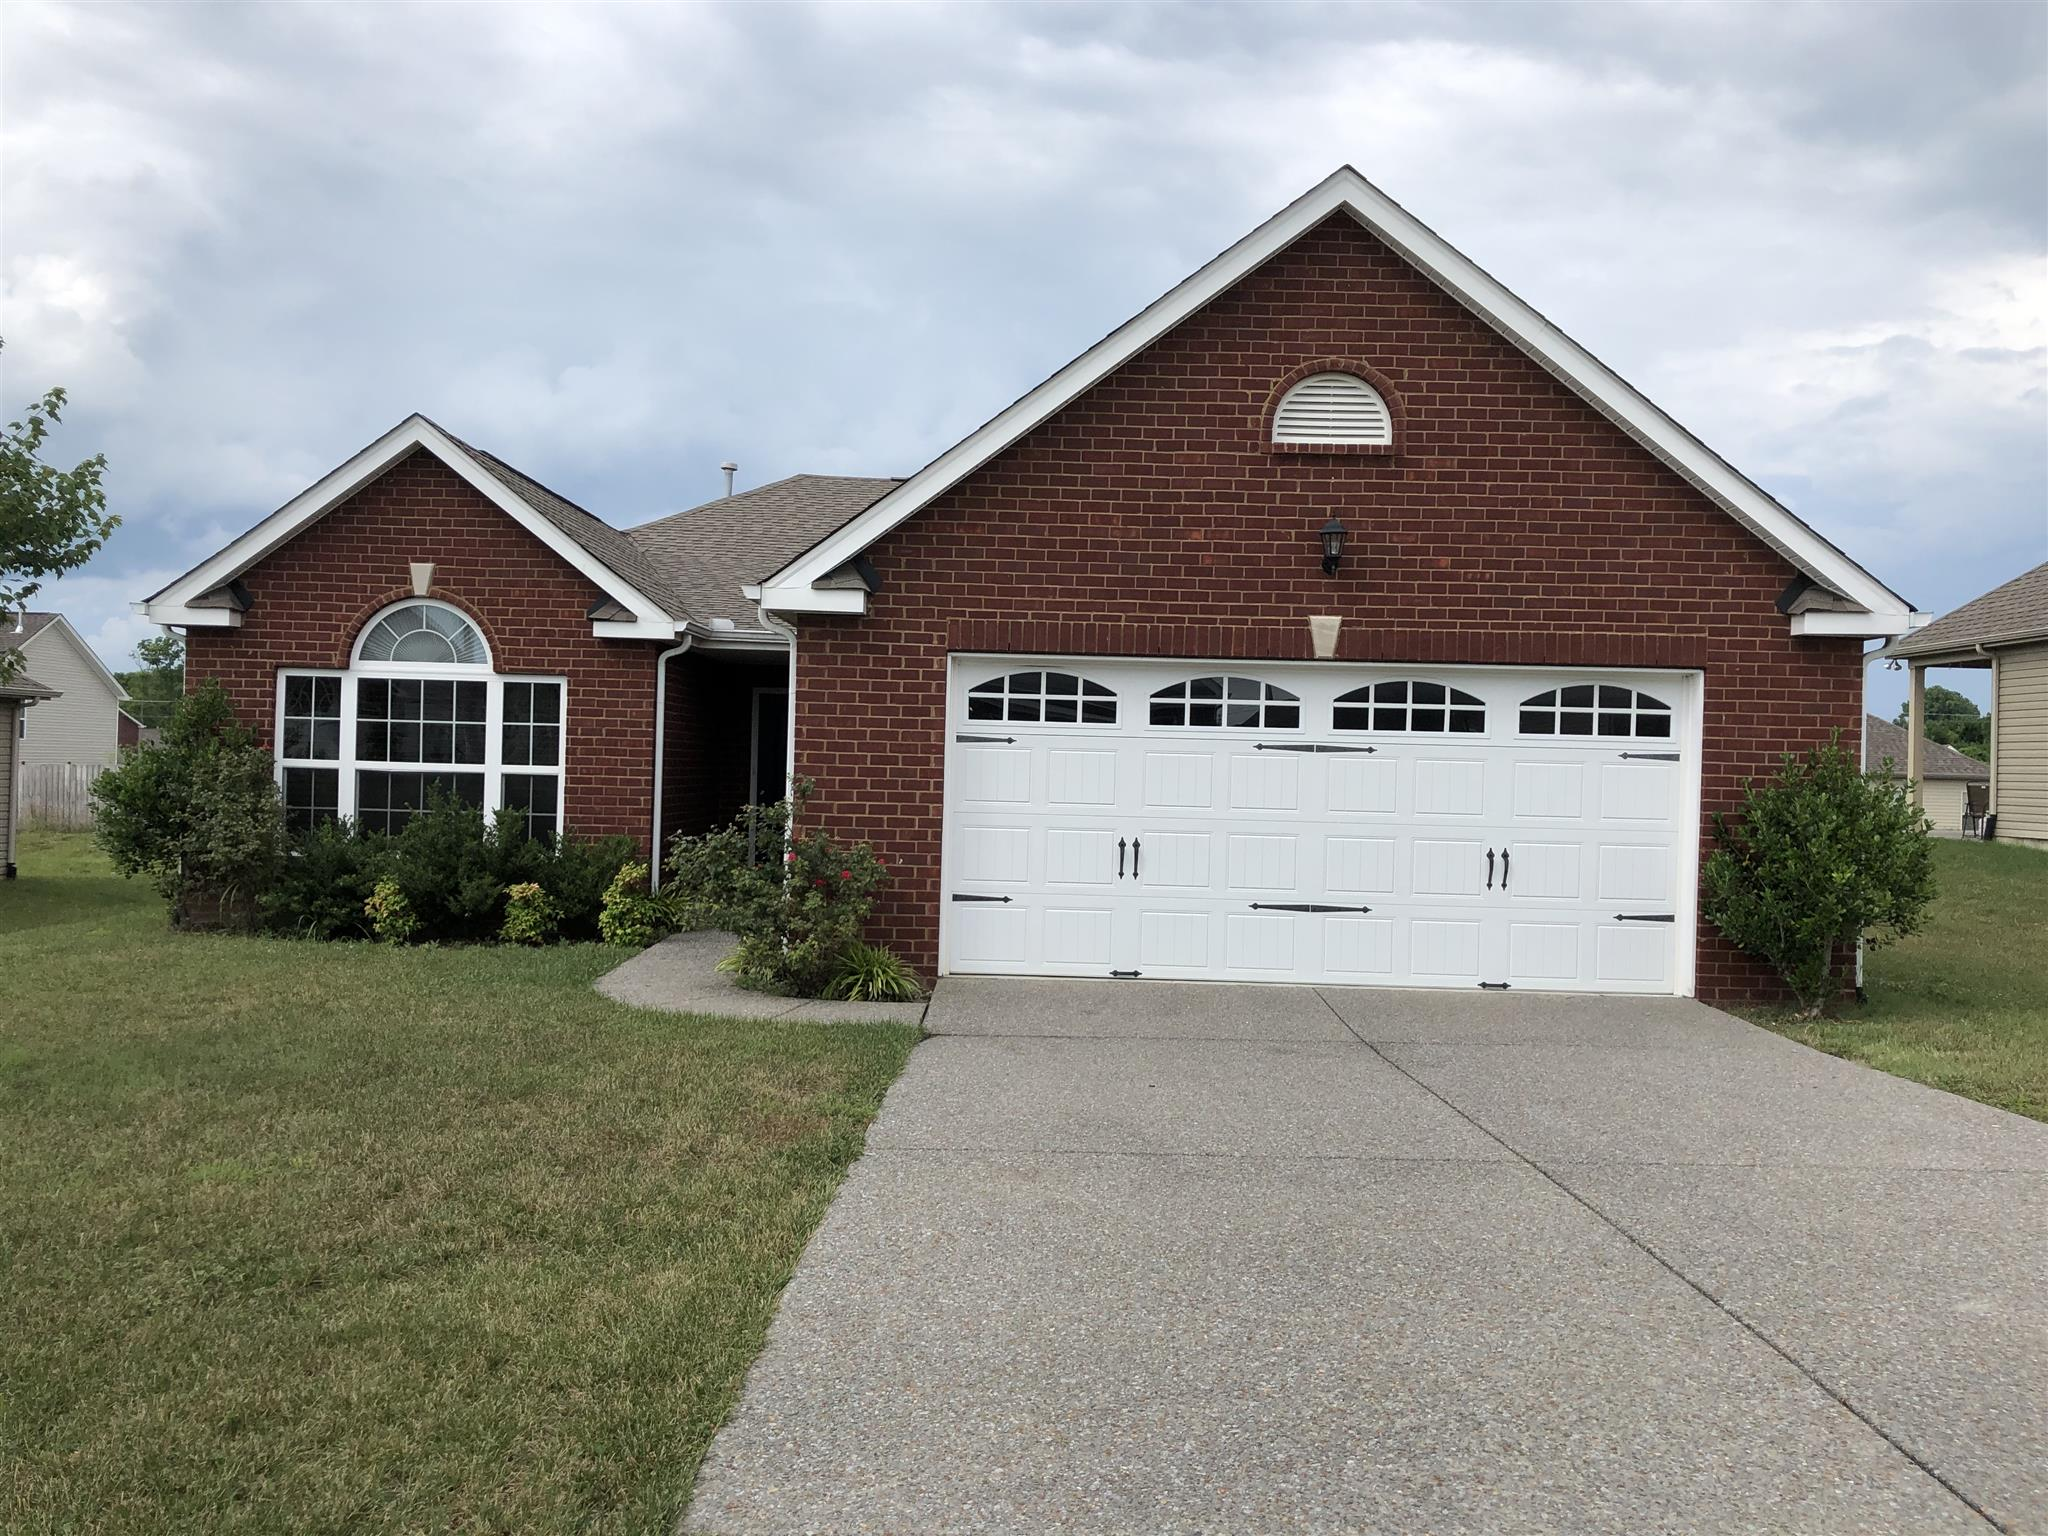 Beautiful All Brick Home With Spacious Kitchen And Living Room Open To Sunroom!  1076 Campbell Ave., Gallatin, TN, 37066